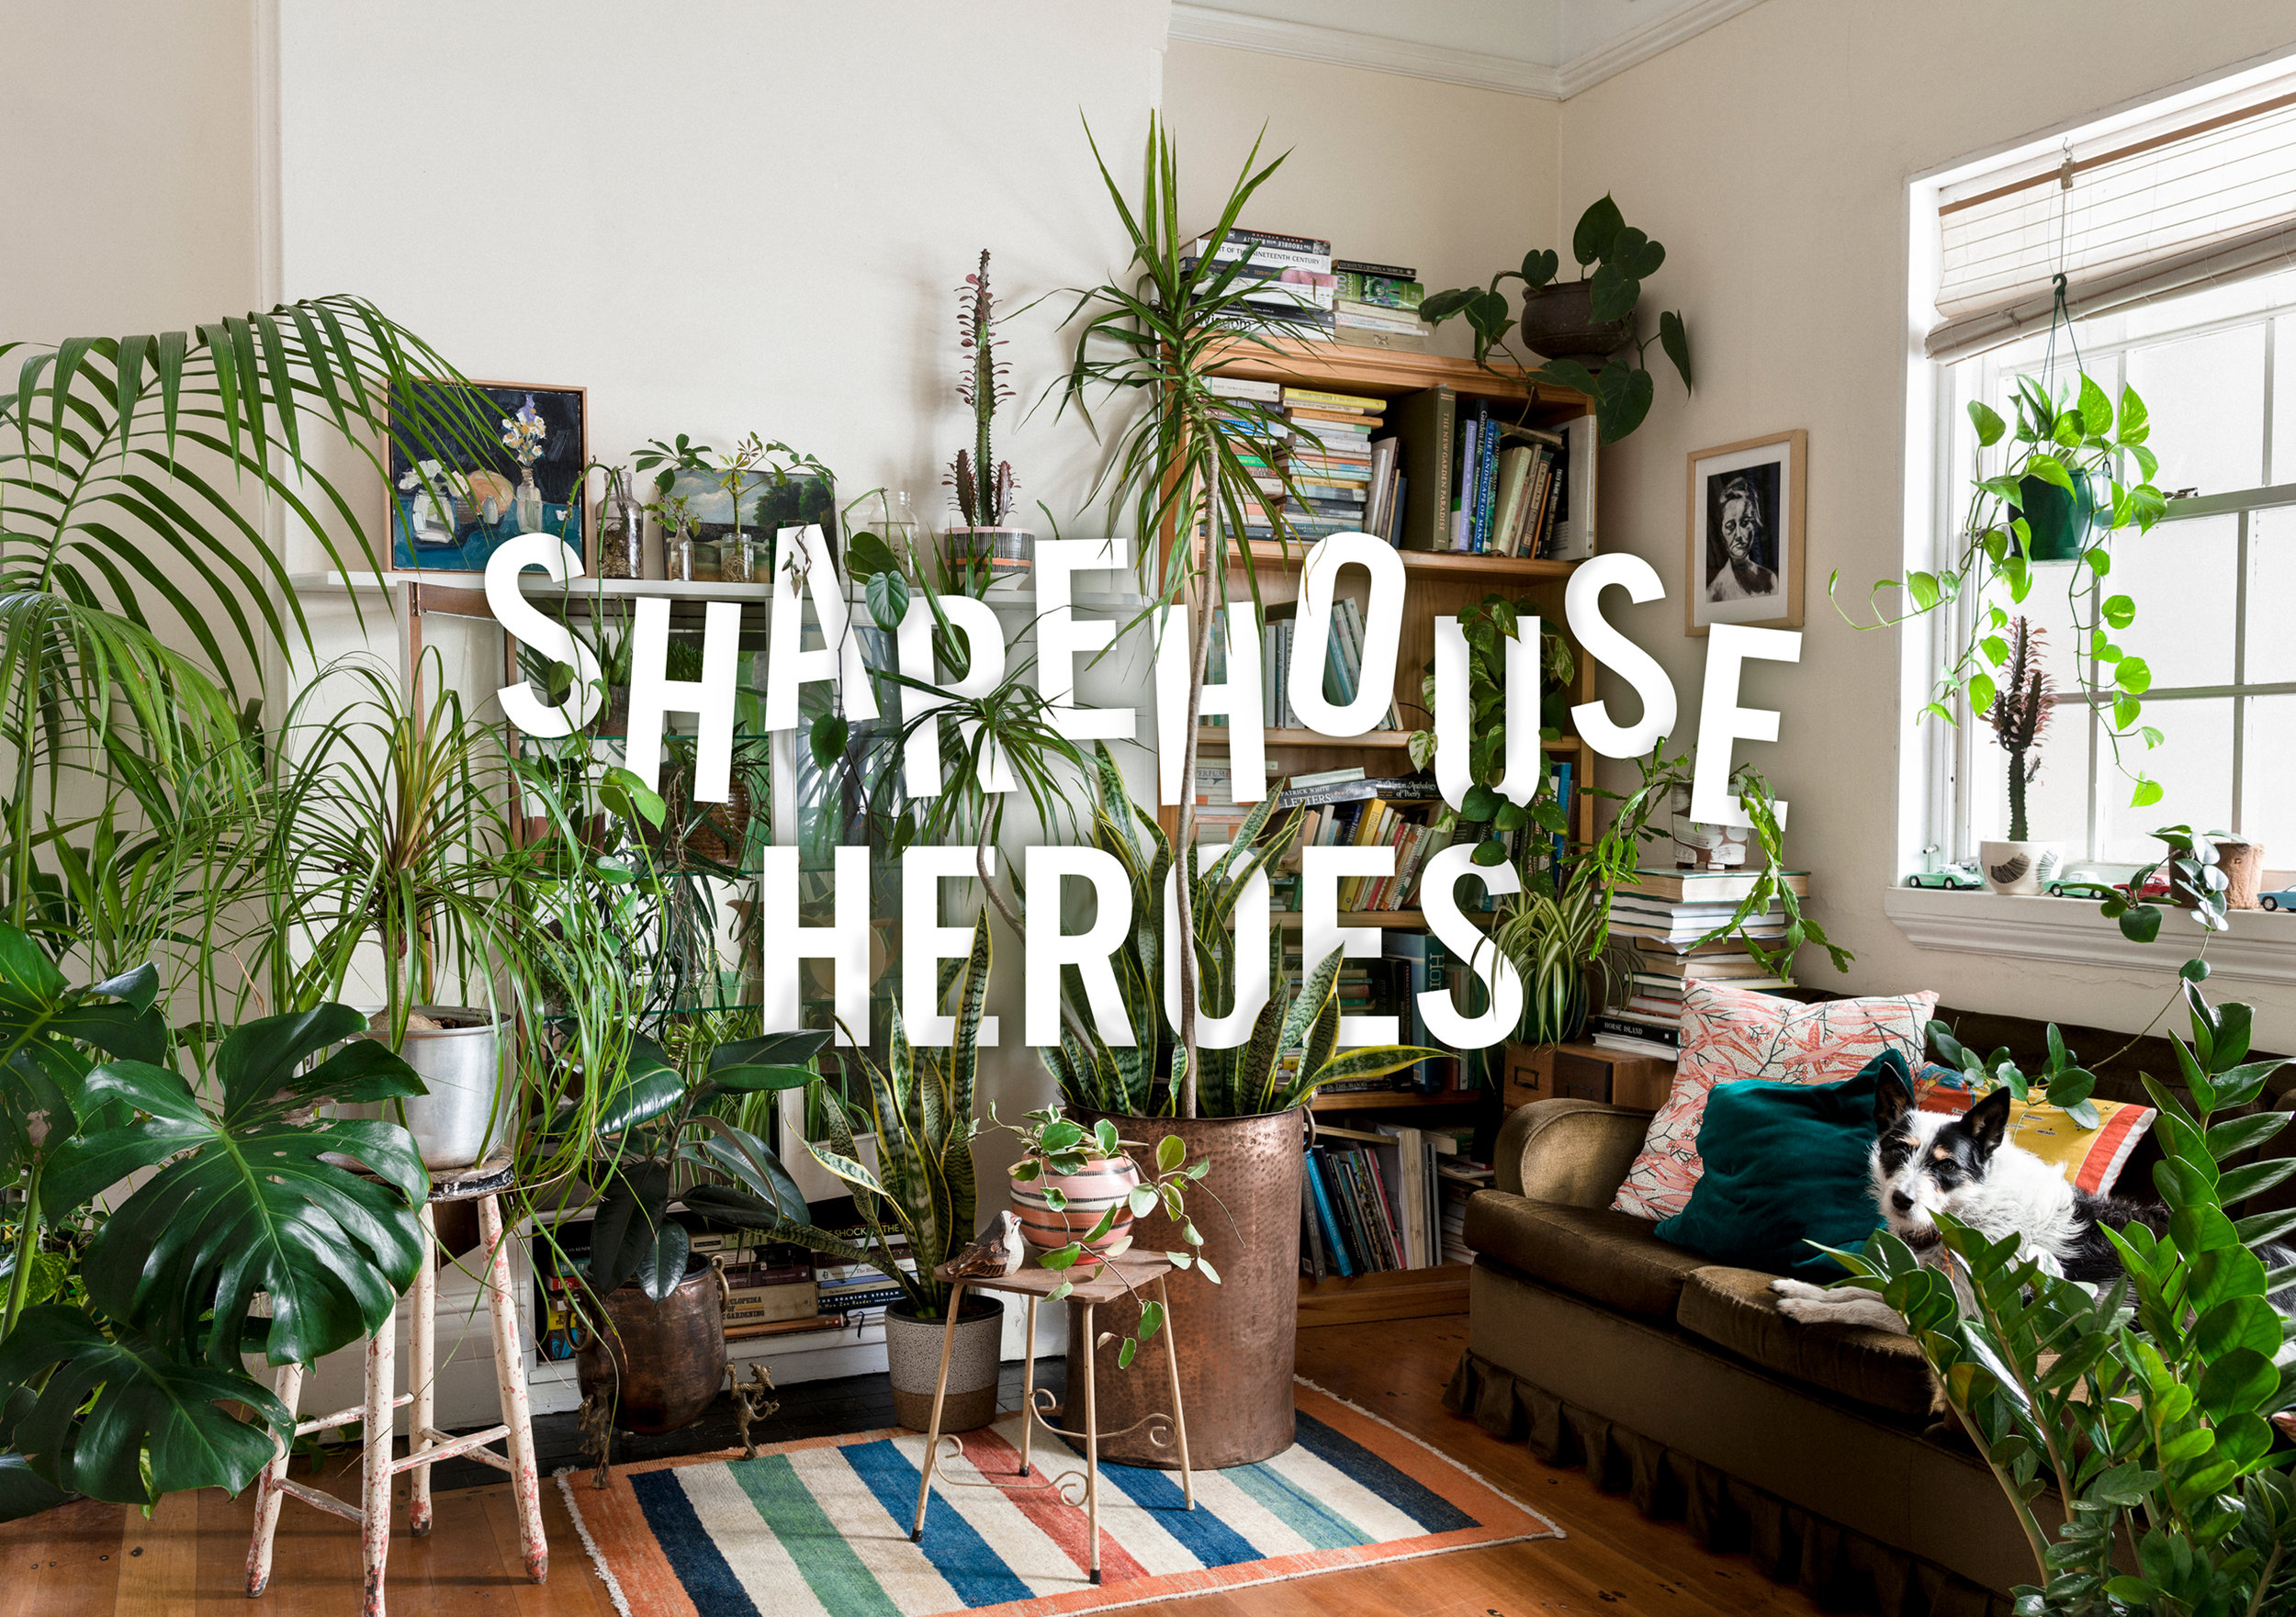 Sharehouse Heroes - As eclectic as your housemates, this moveable garden features a cool collection of low maintenance plants that won't keep you from partying on Saturday night.